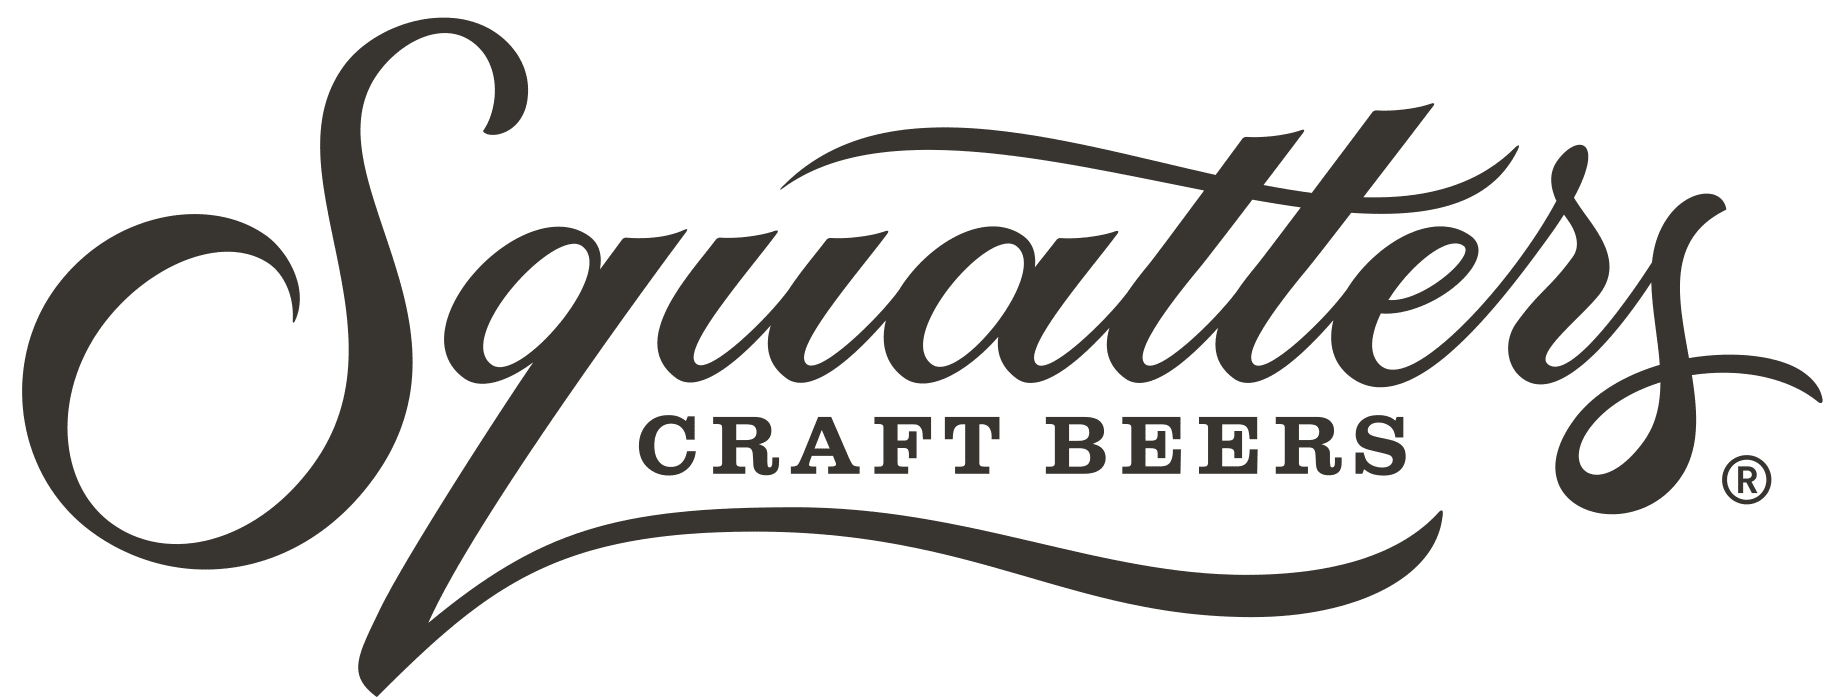 Squatters Craft Beers (1)